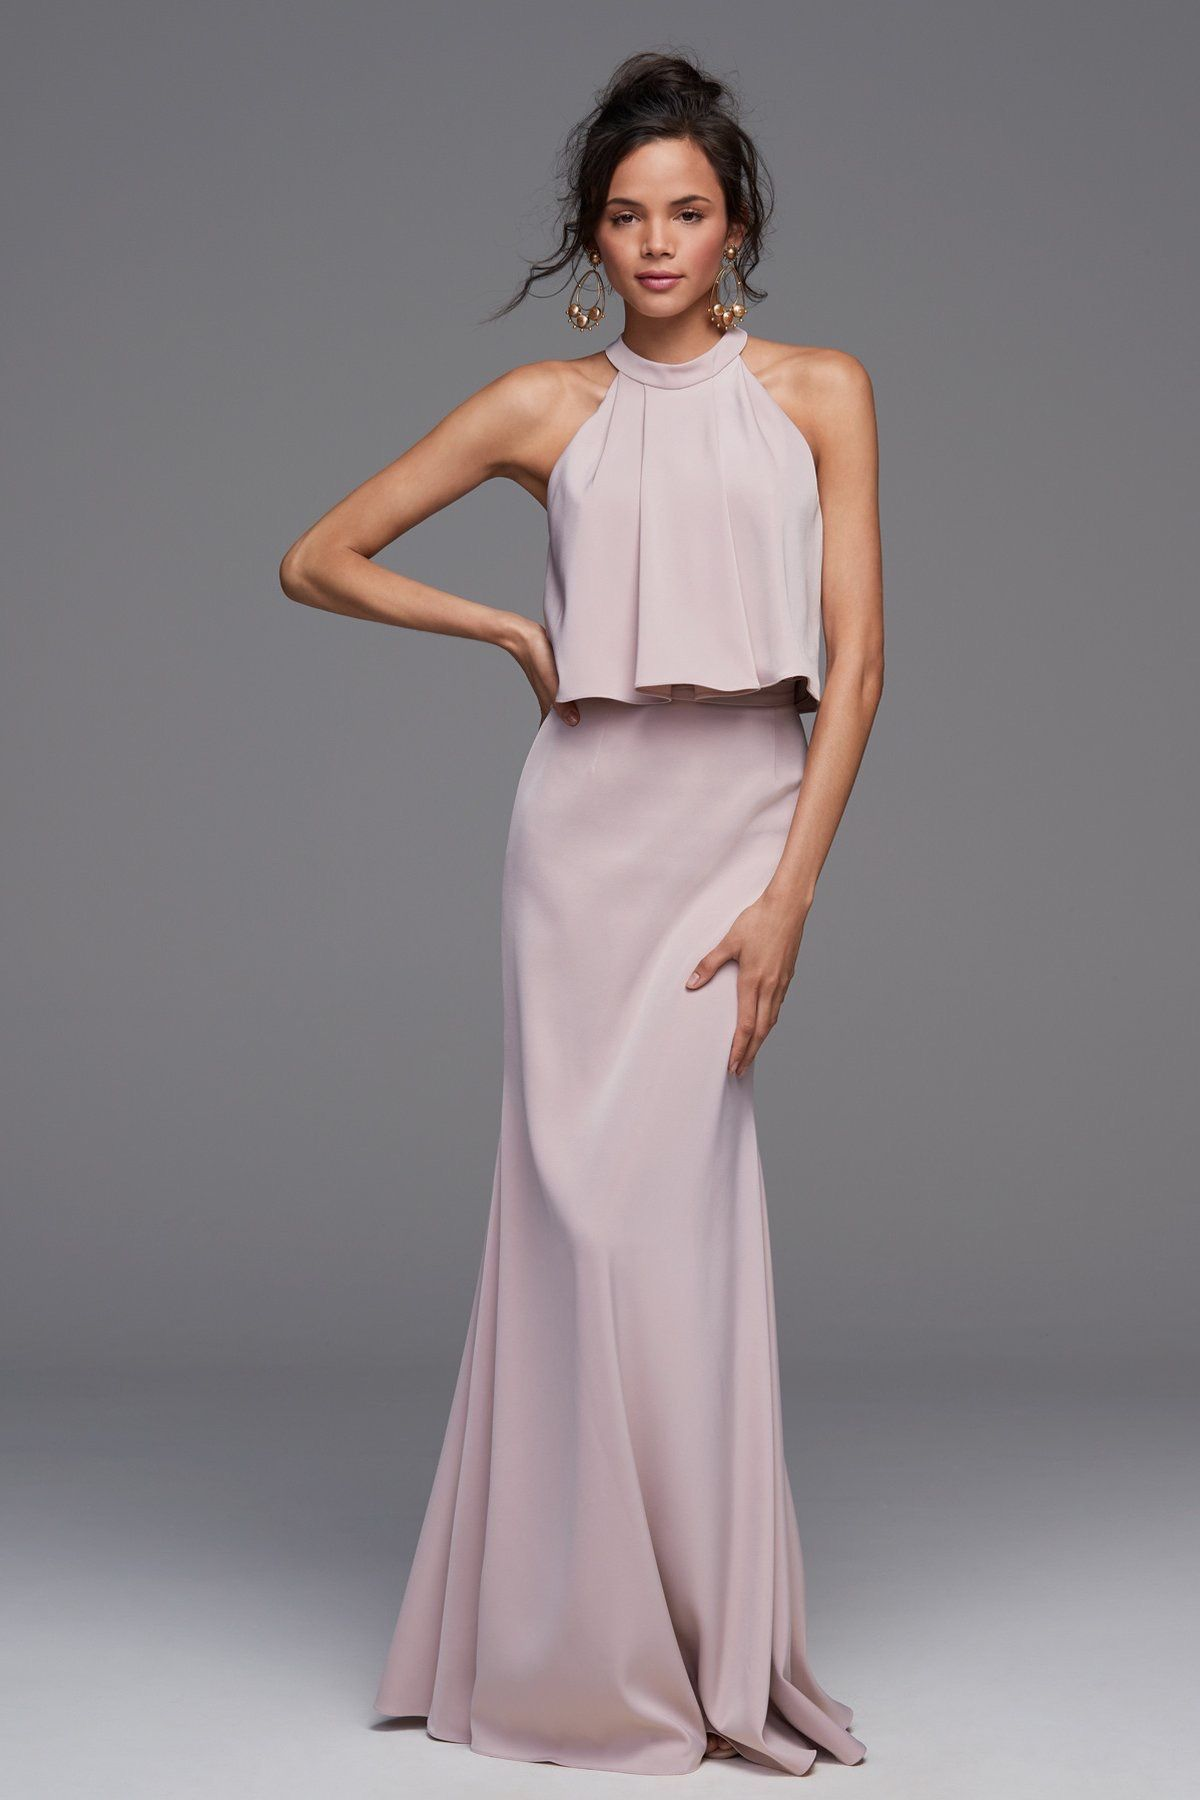 381a10eece45 Watters Montana Top with Remi Skirt - The Blushing Bride boutique in  Frisco, Texas